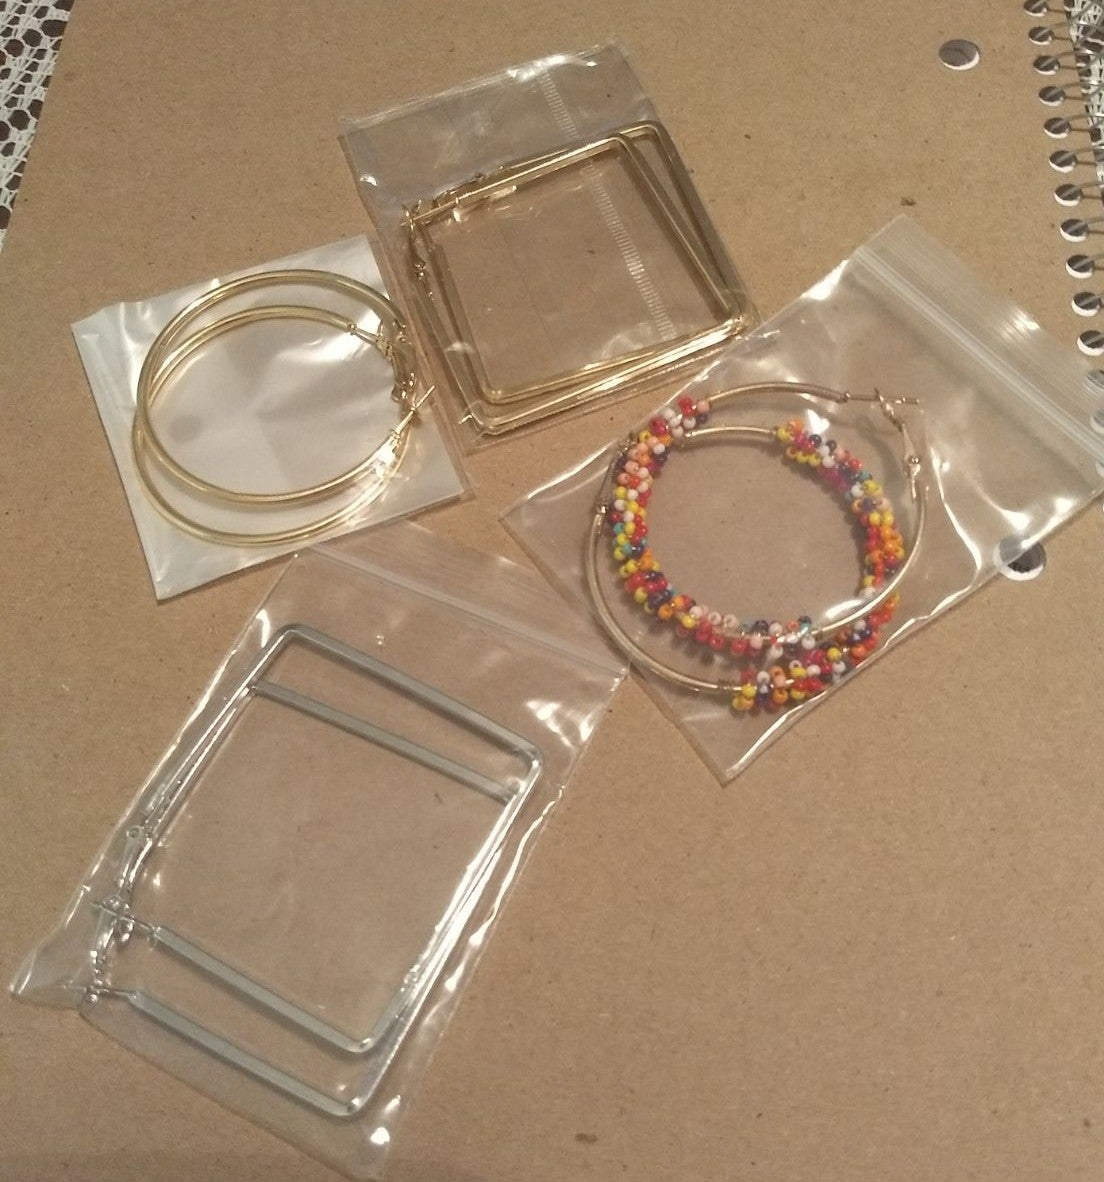 Set of 4 Pairs of Earrings for women